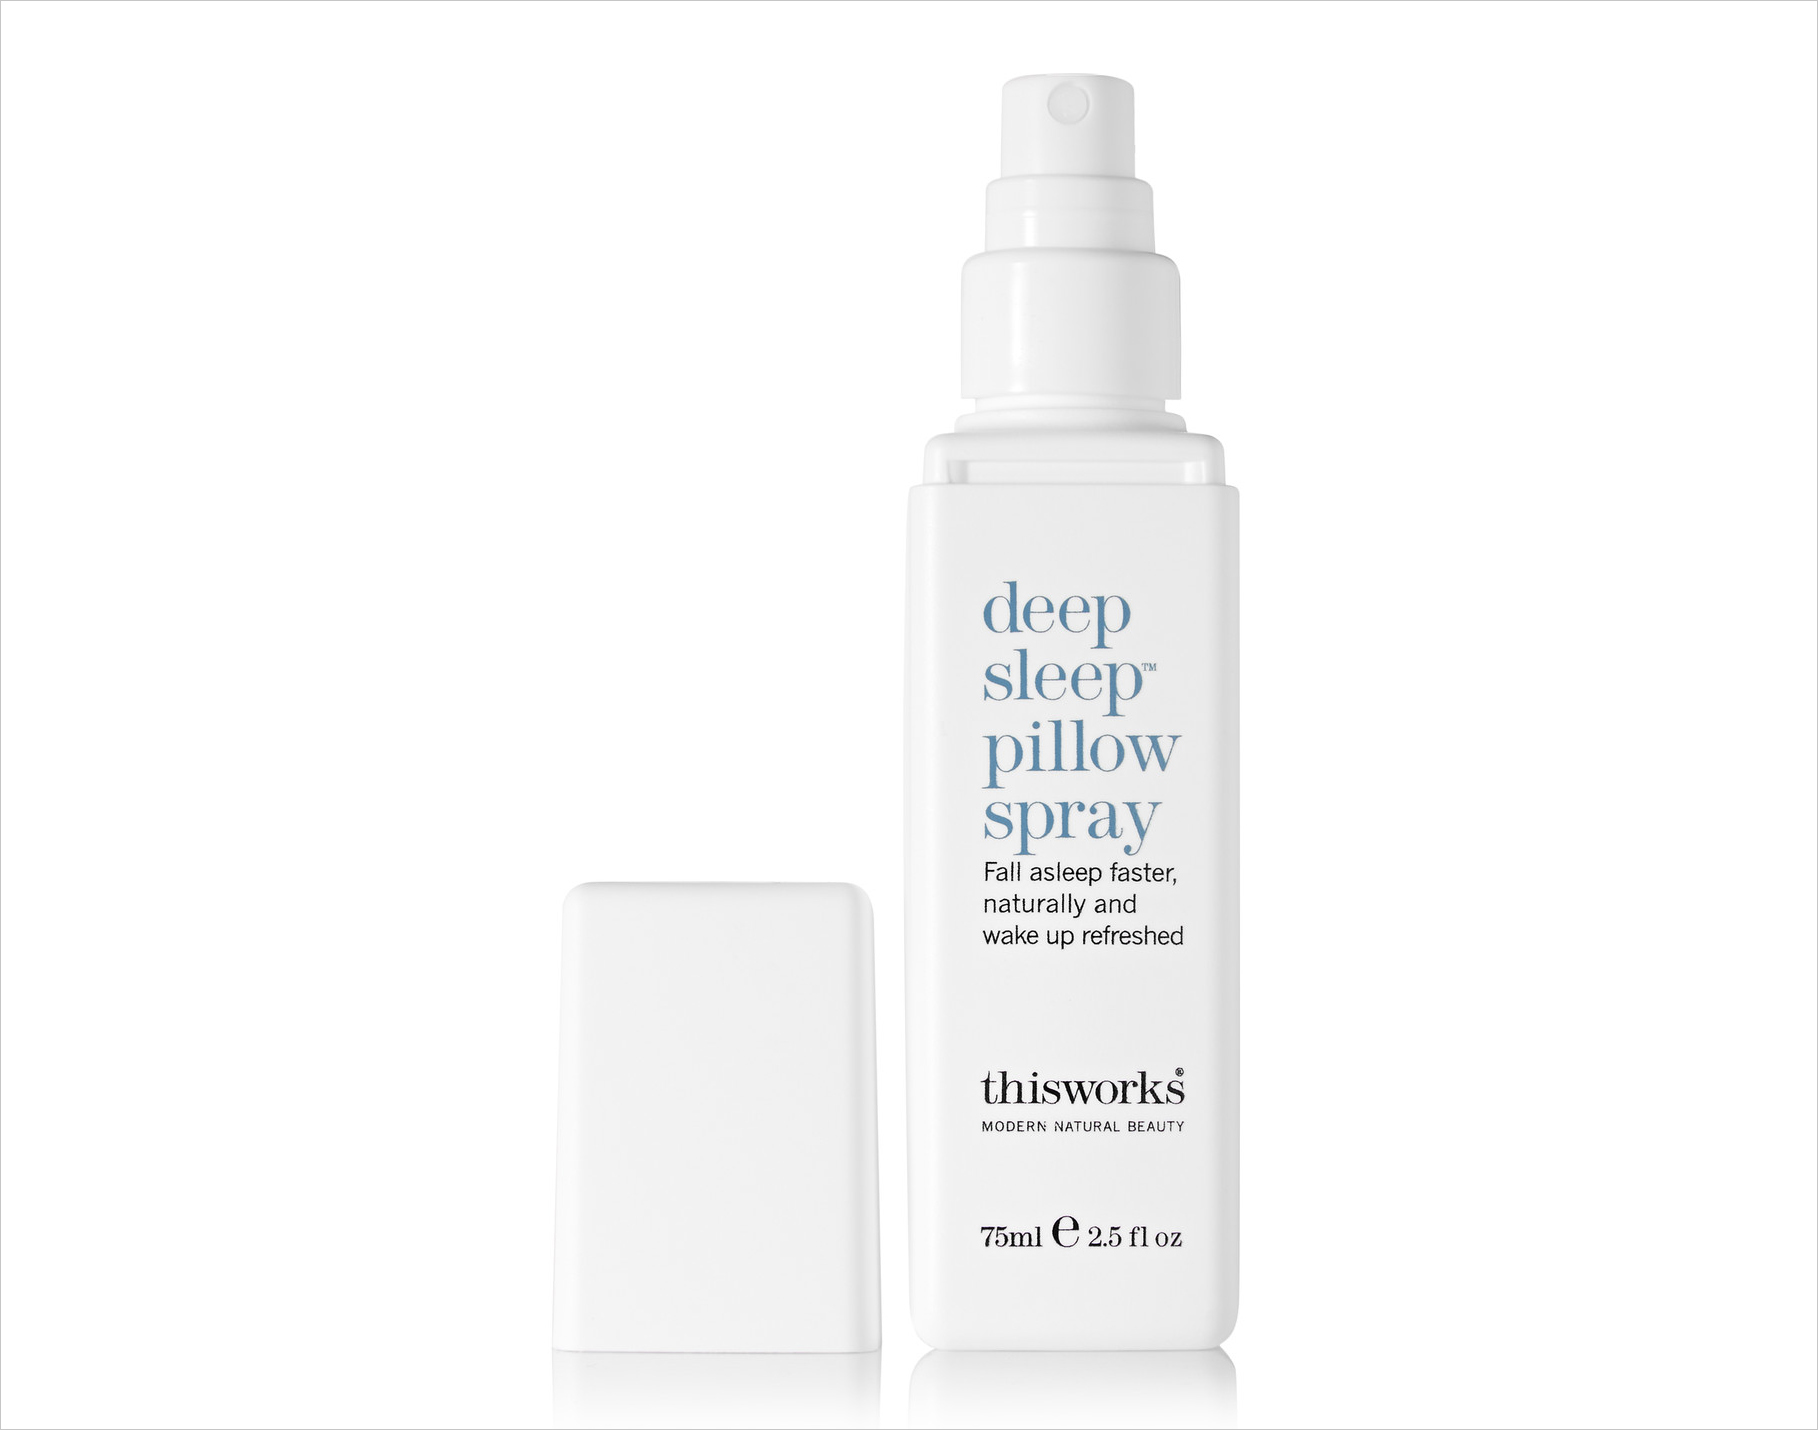 Deep Sleep Pillow Spray by This Works bridal relaxation products and tips